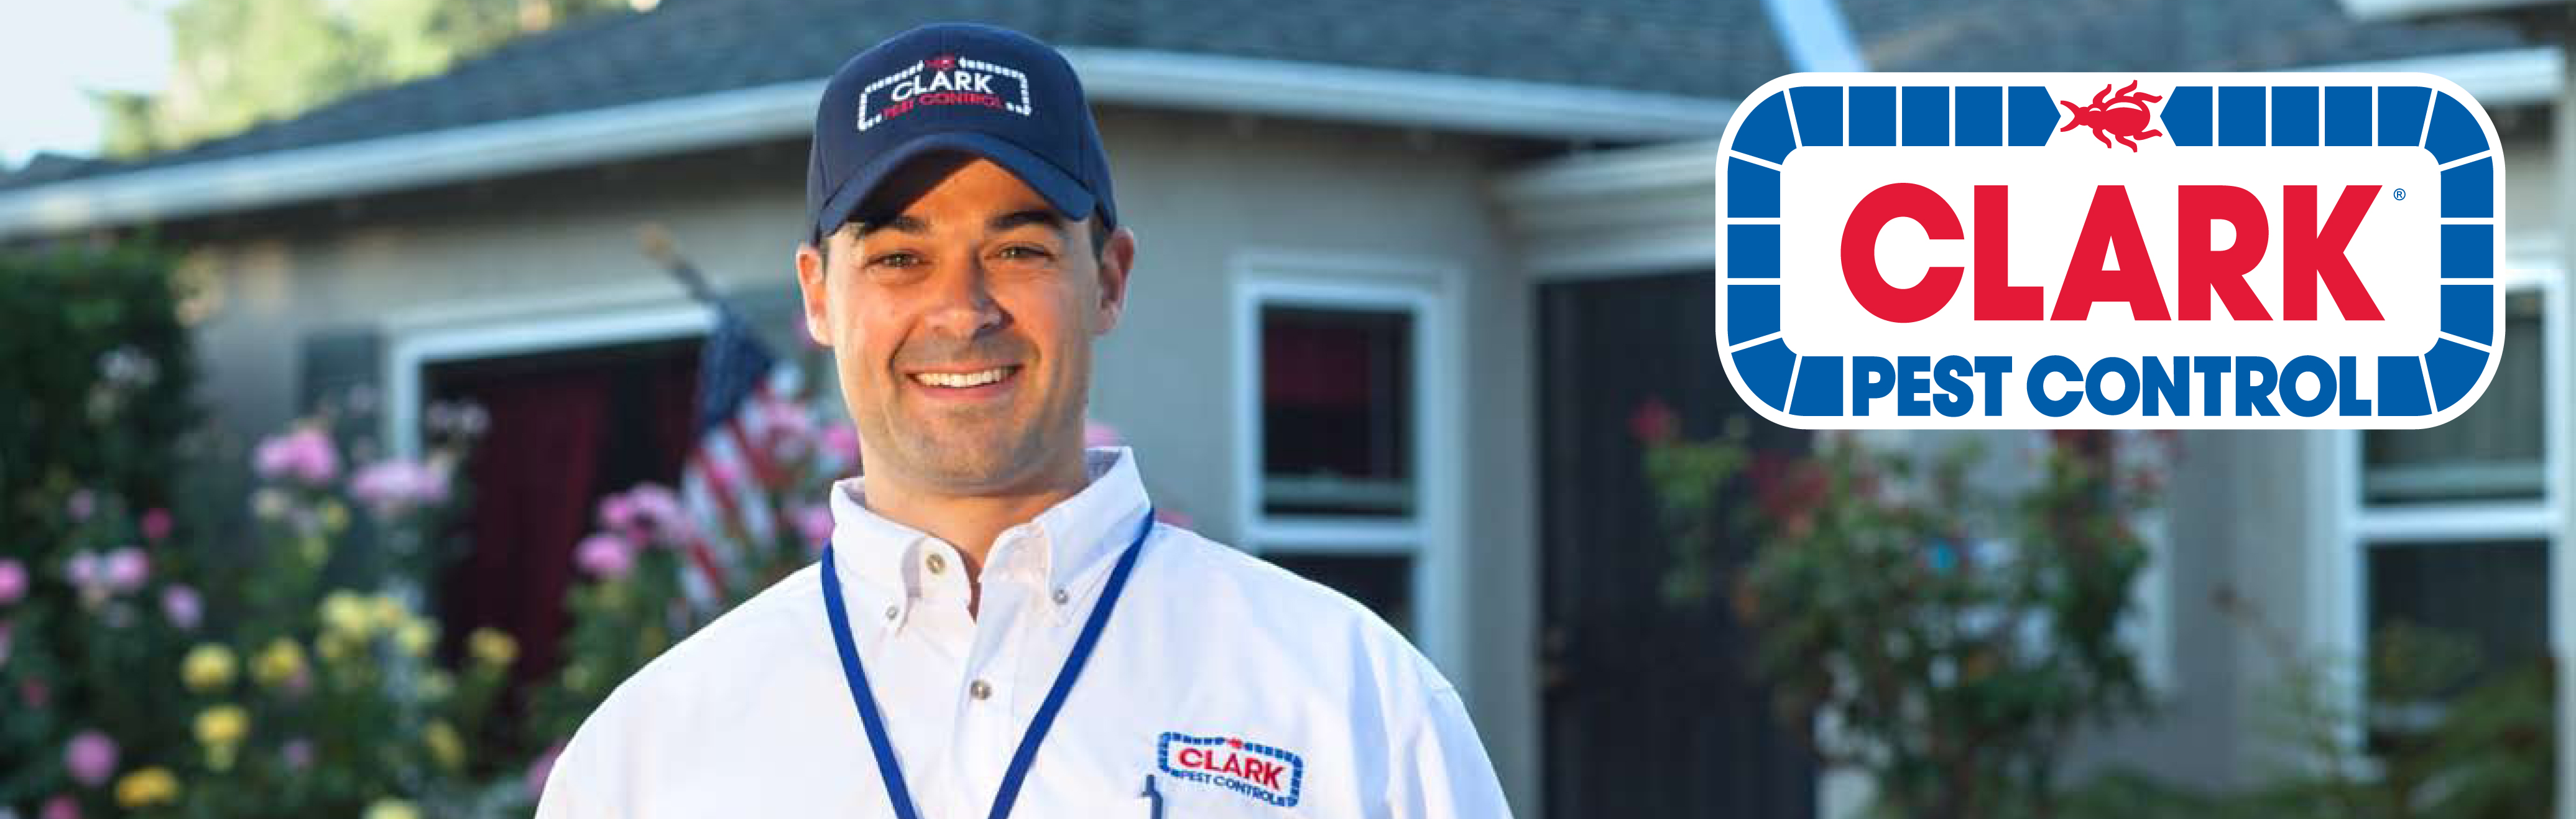 Clark Pest Control reviews | Landscaping at 3080 Crossroads Drive - Redding CA